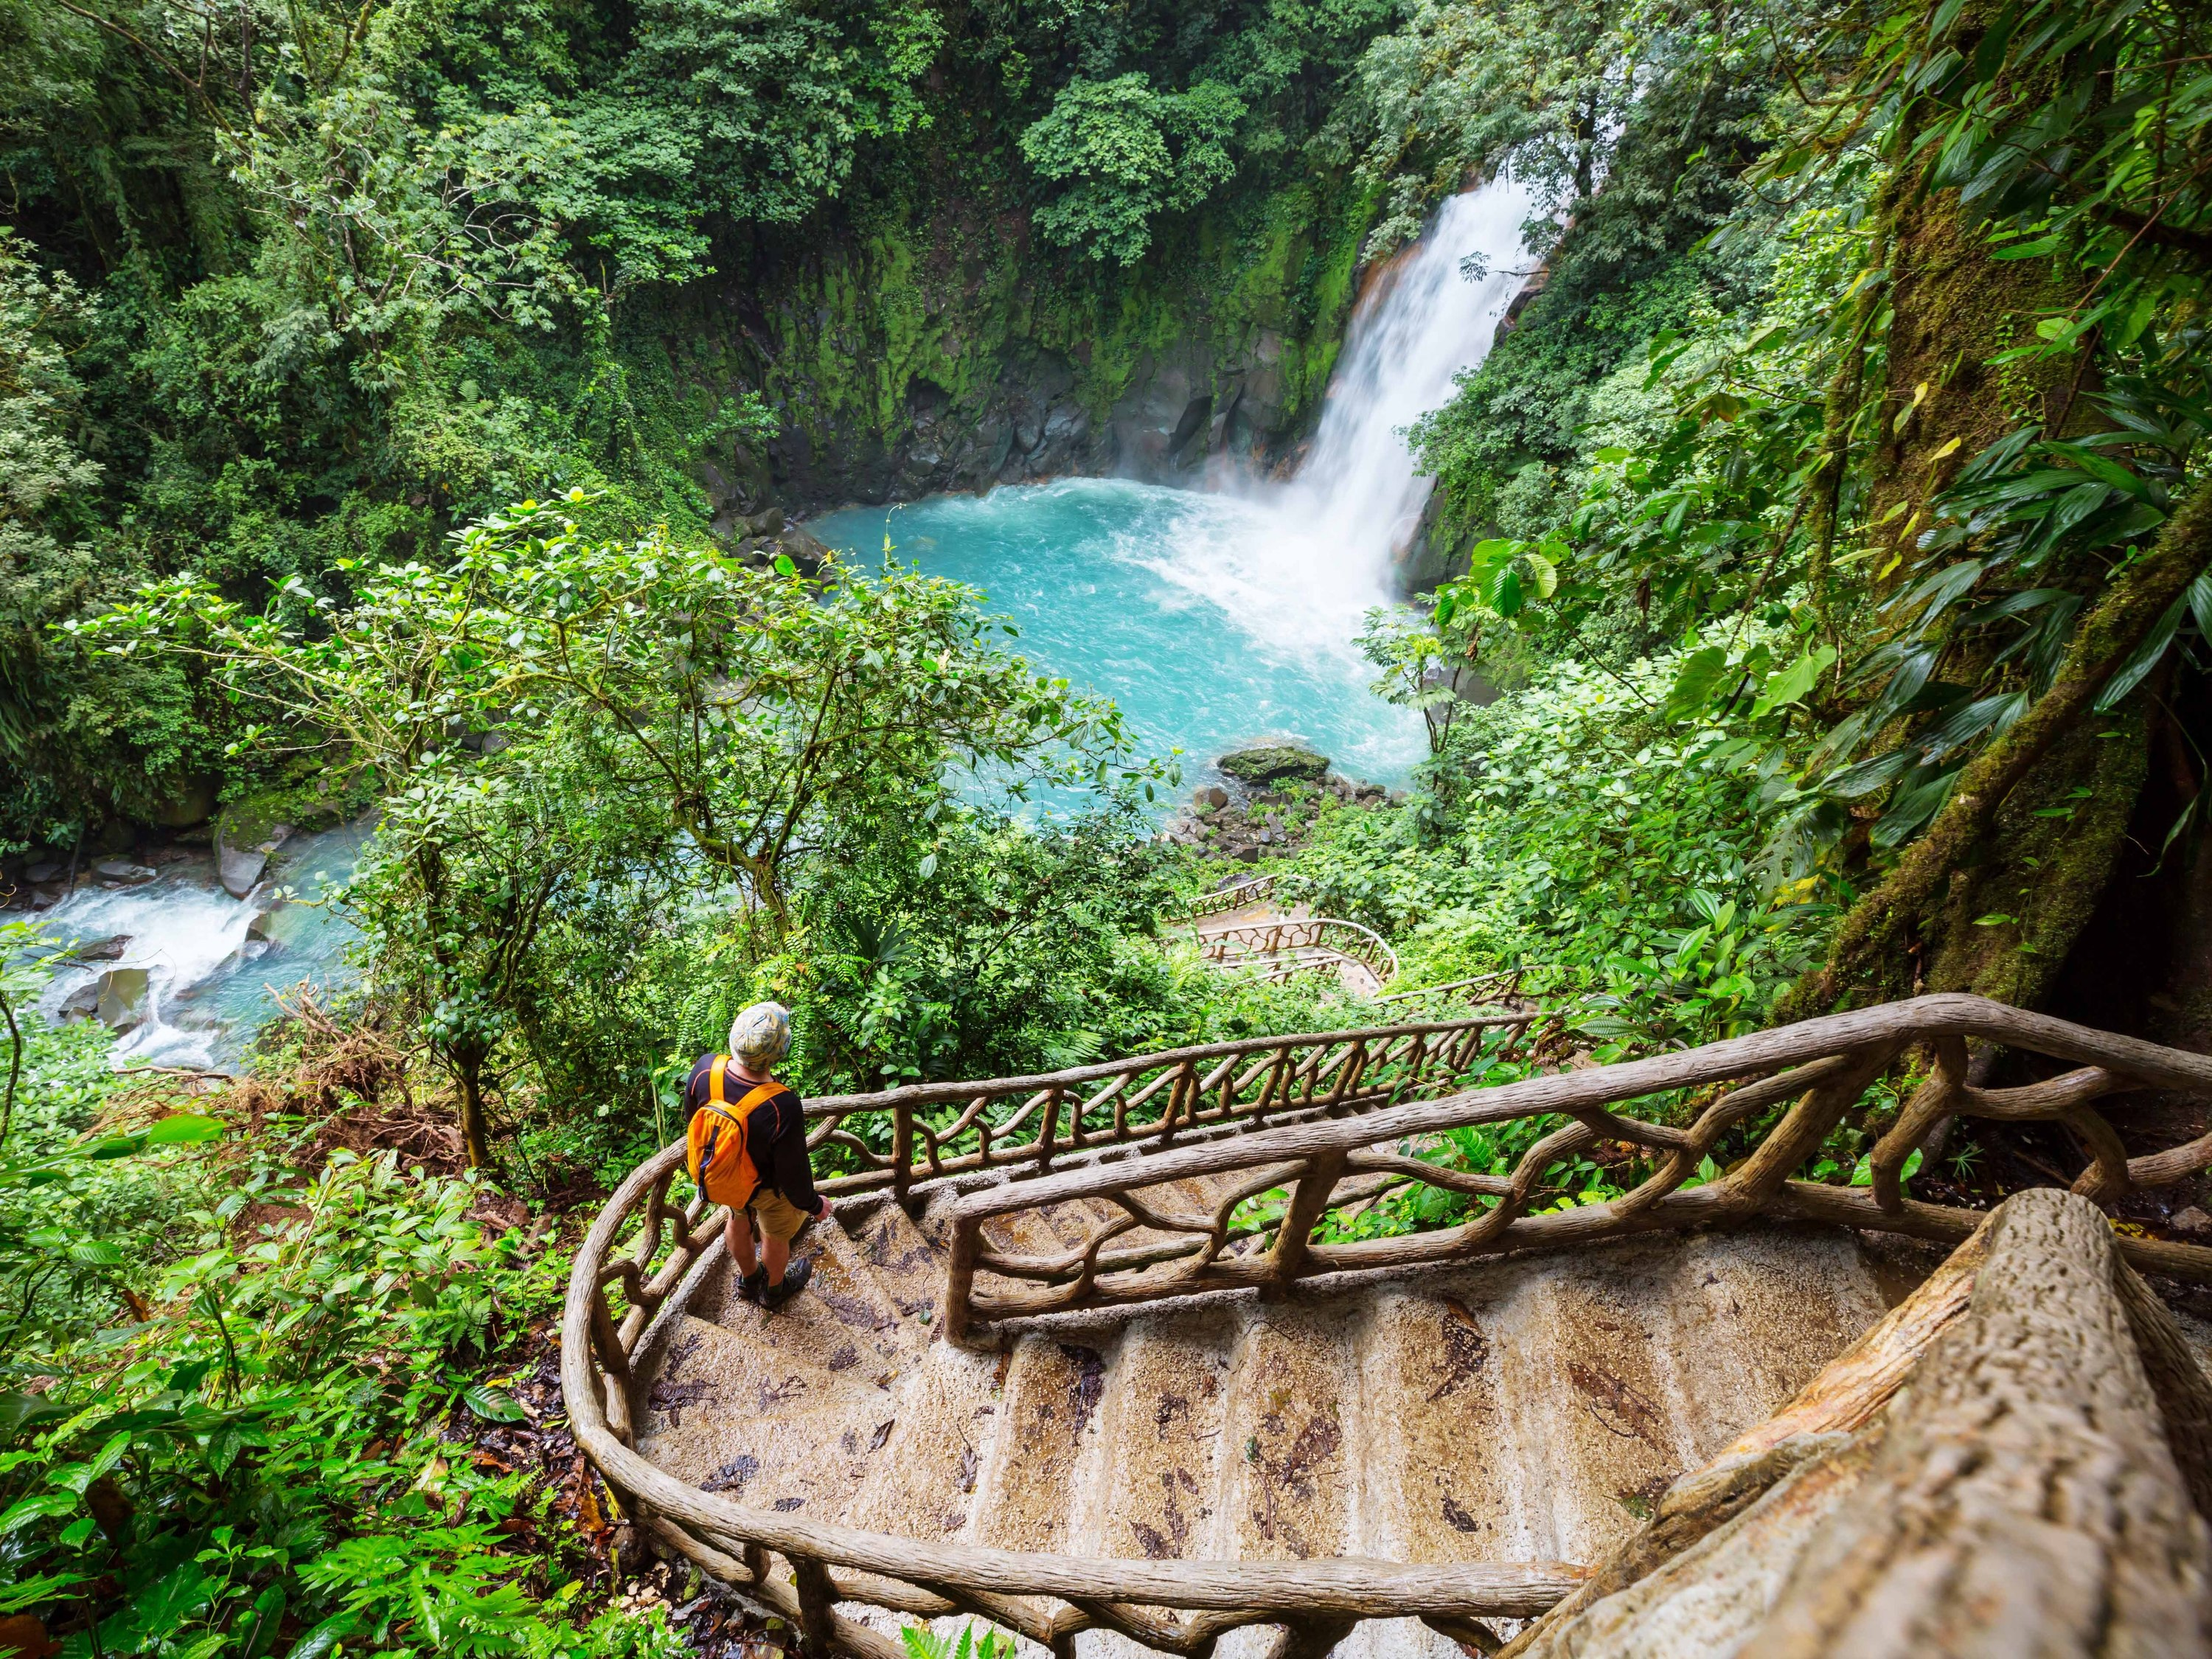 Costa Rica is giving away 15 free trips for two—here's how to get in on the action